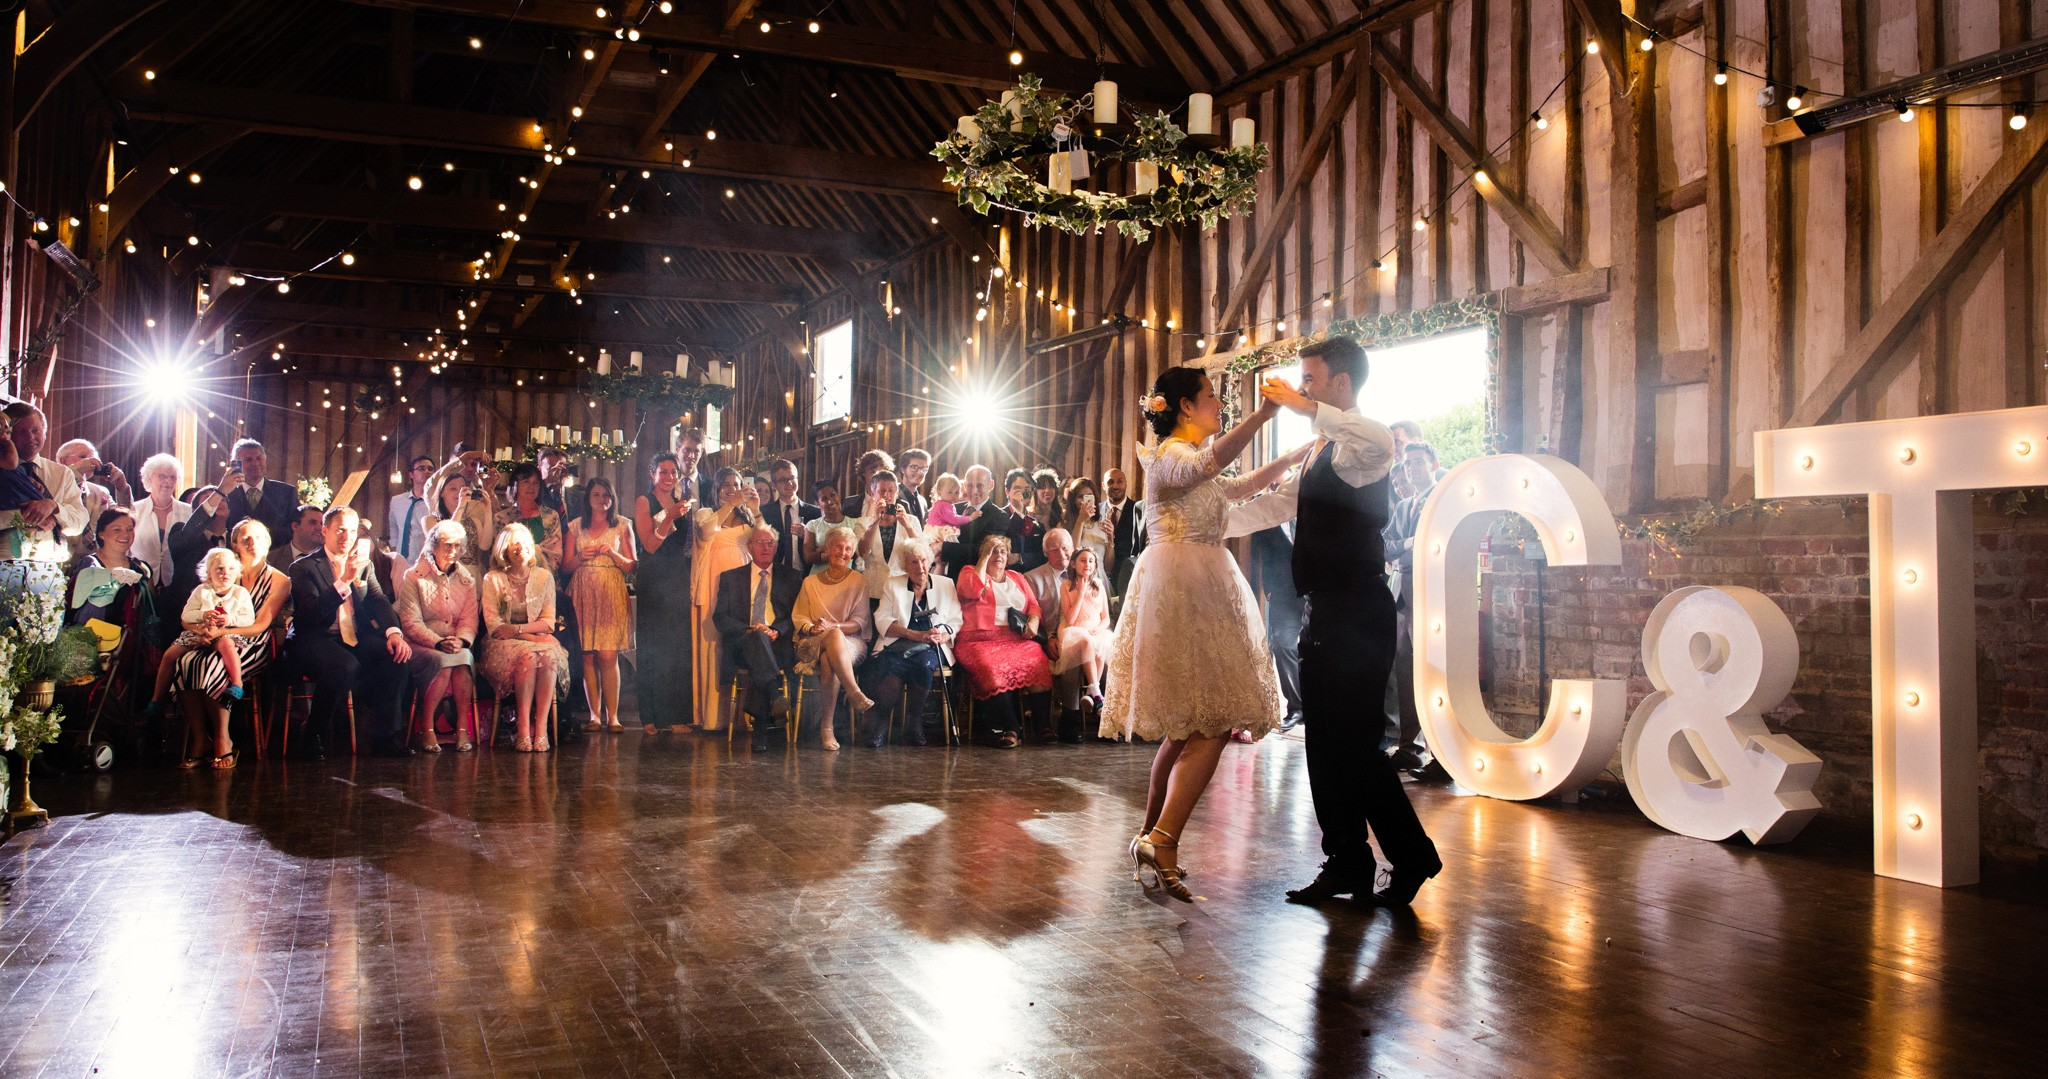 Chris Giles Photography. The couples first dance setting the barn alive!